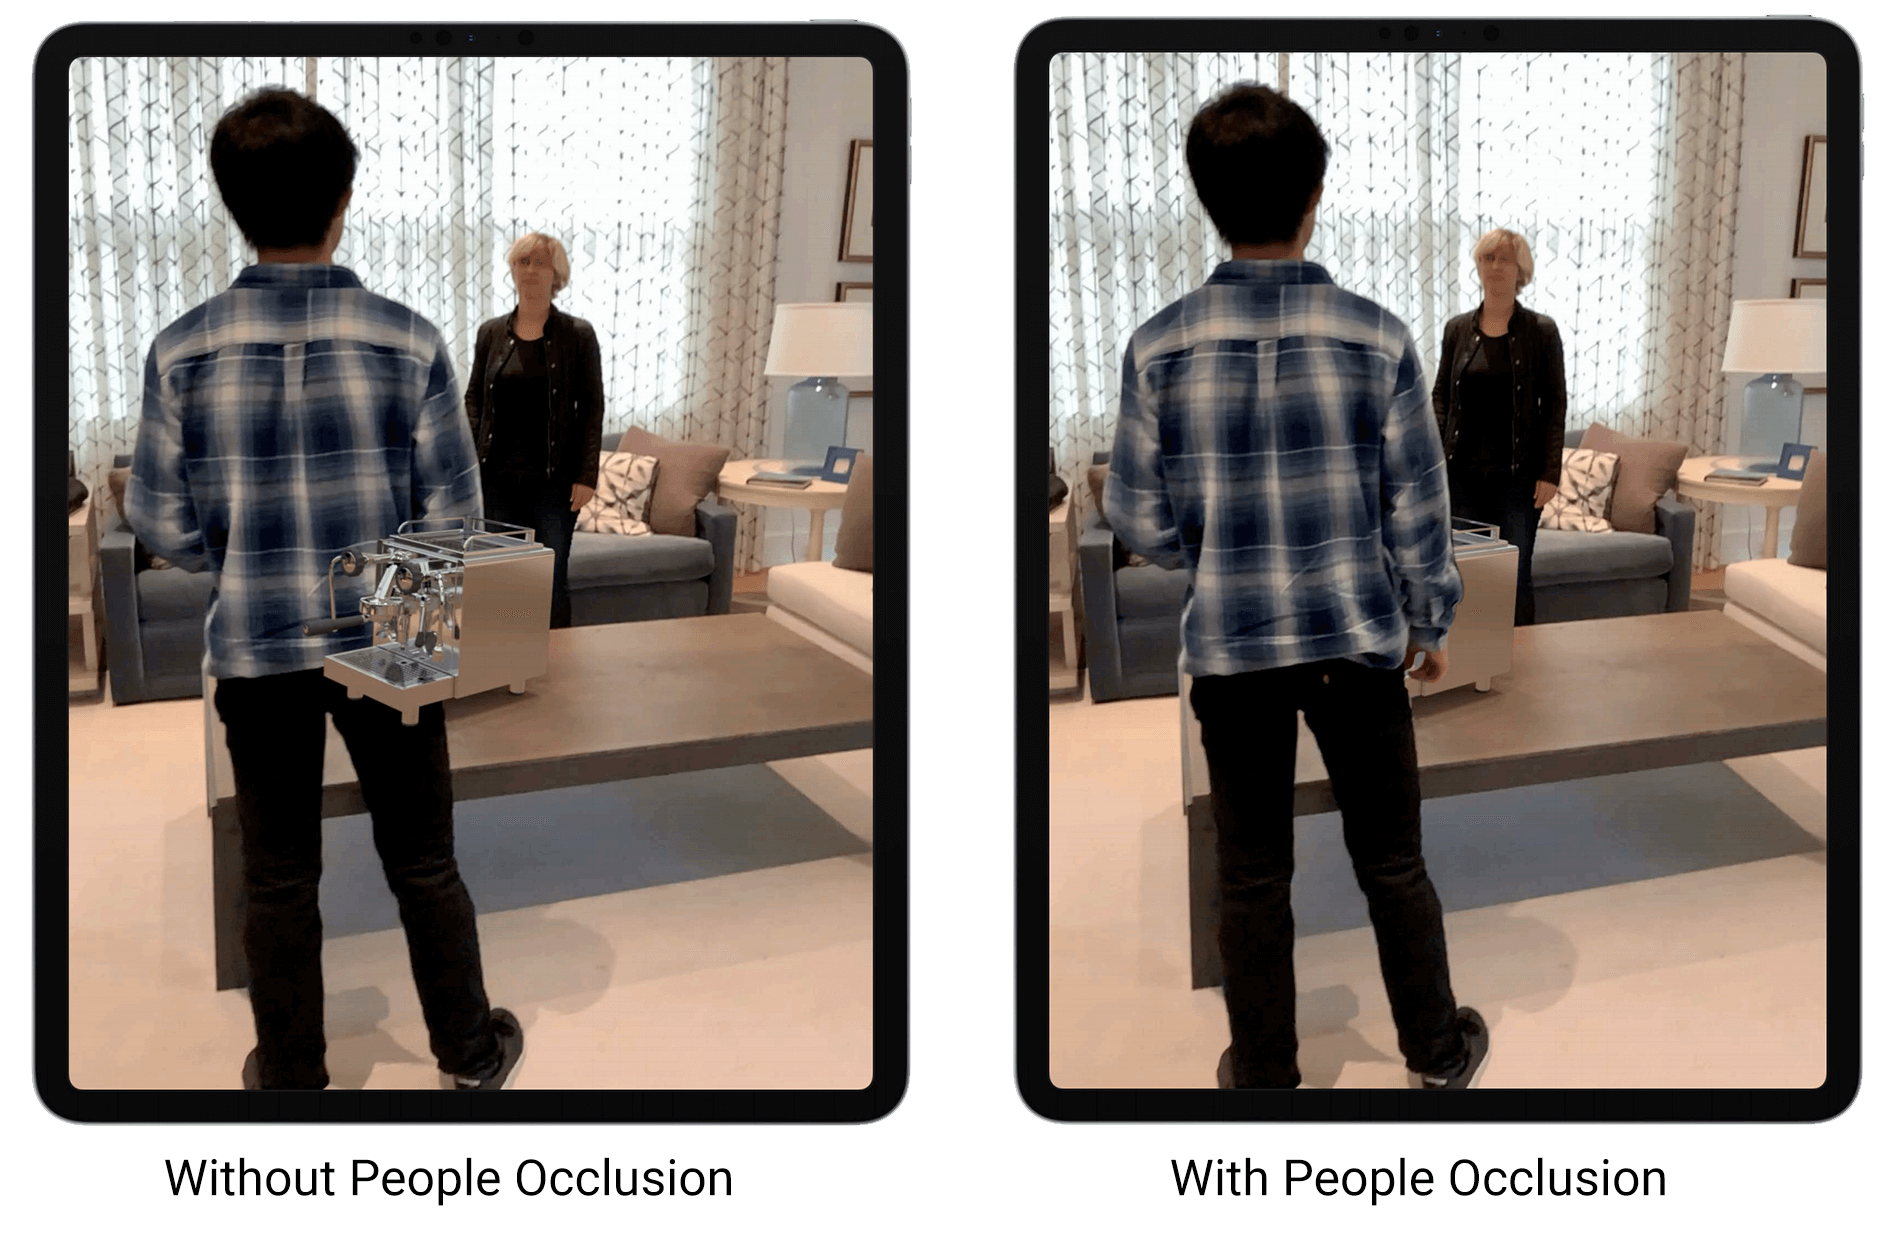 ARKit 3 brings more power to Apple's Augmented Reality